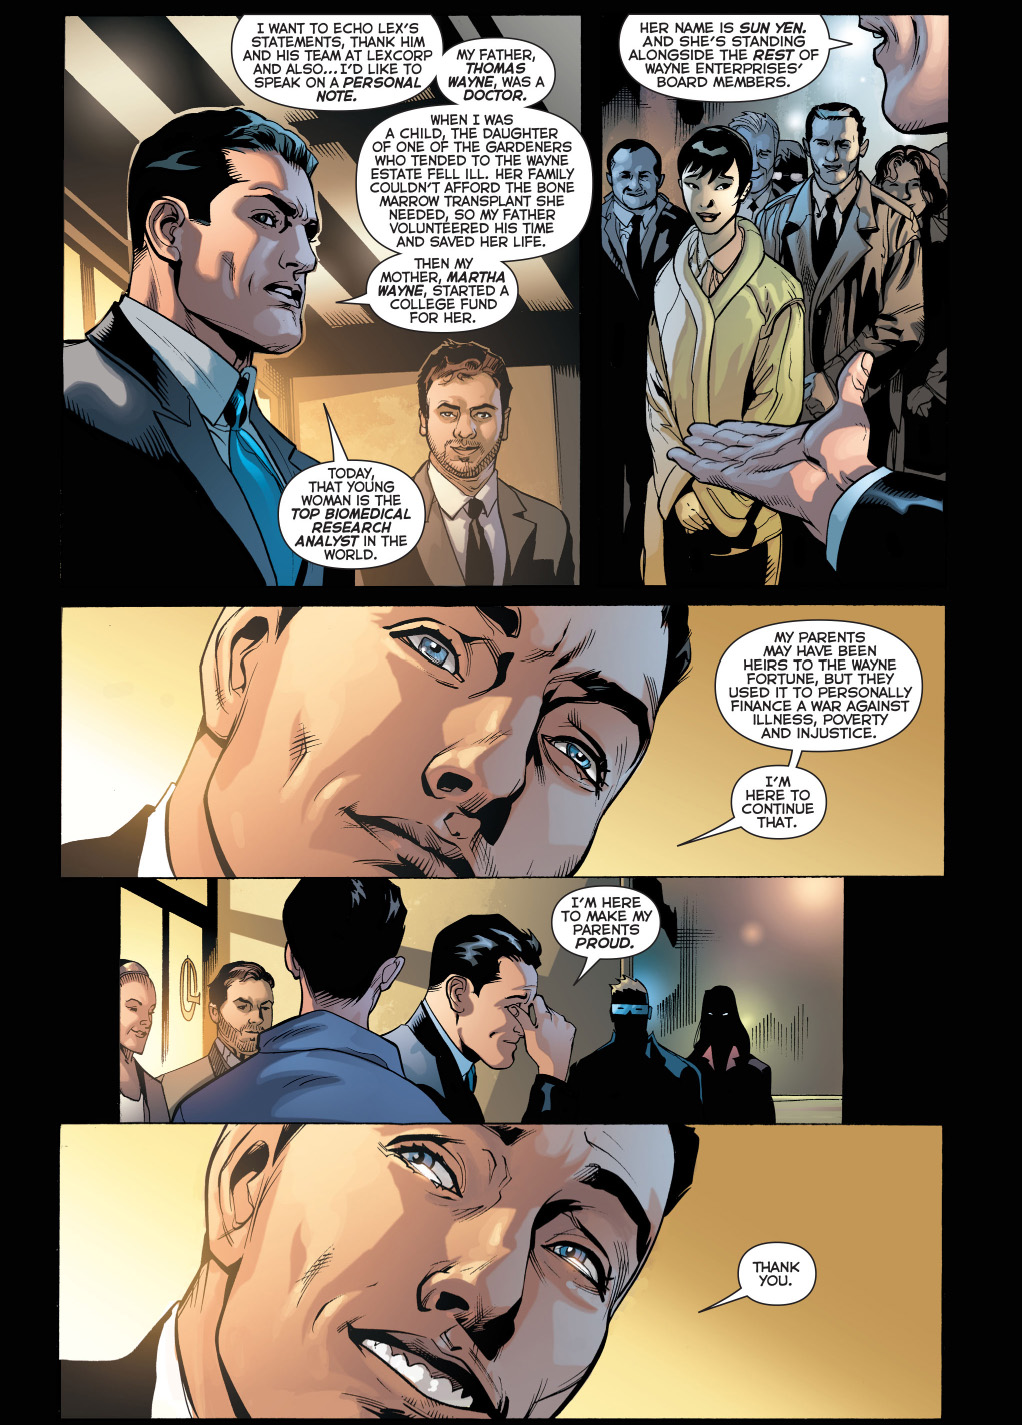 bruce wayne outdoes lex luthor in speech